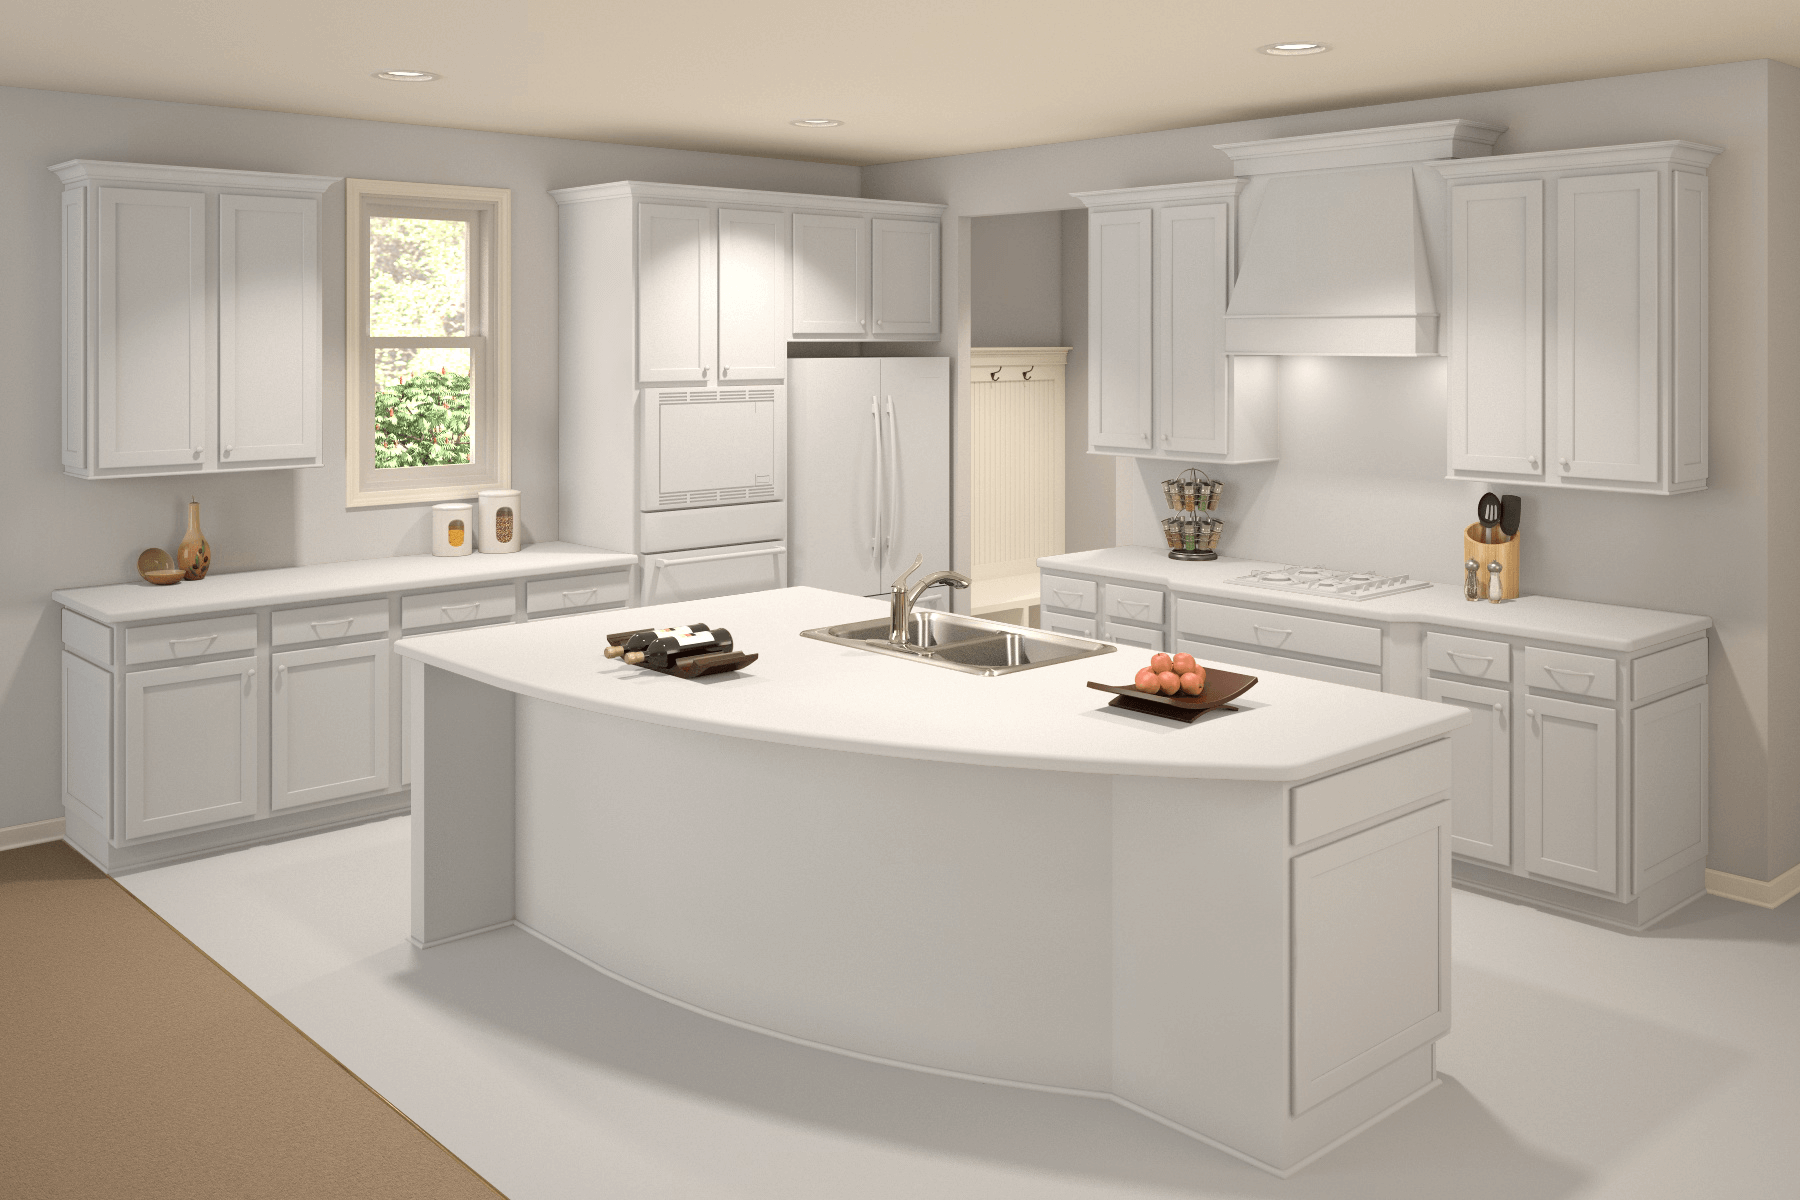 Beazer Homes Raleigh Division Virtual Design Studio